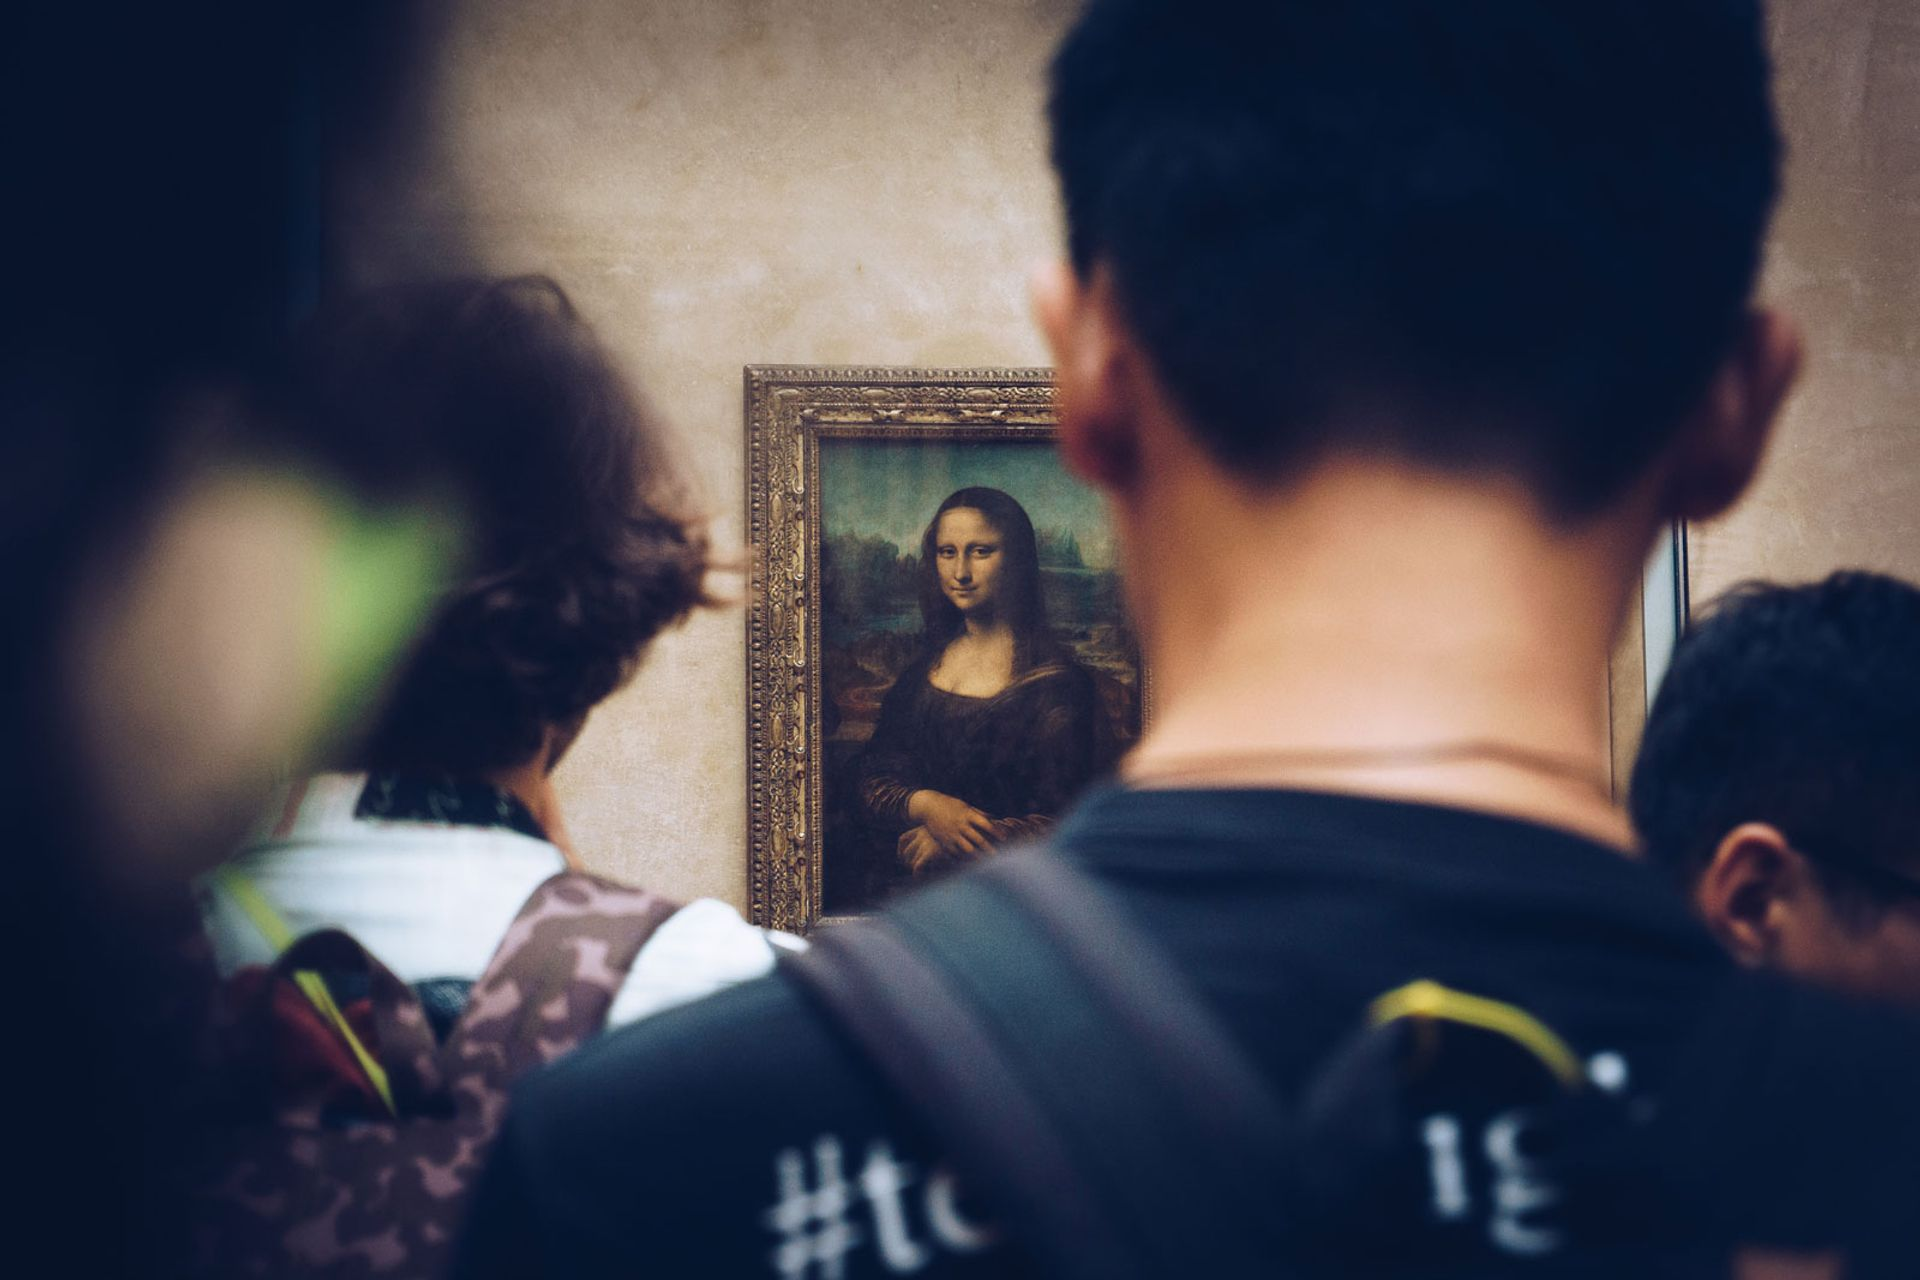 Visitor numbers at the Louvre have increased by more than 20% since 2009 © Juan di Nella